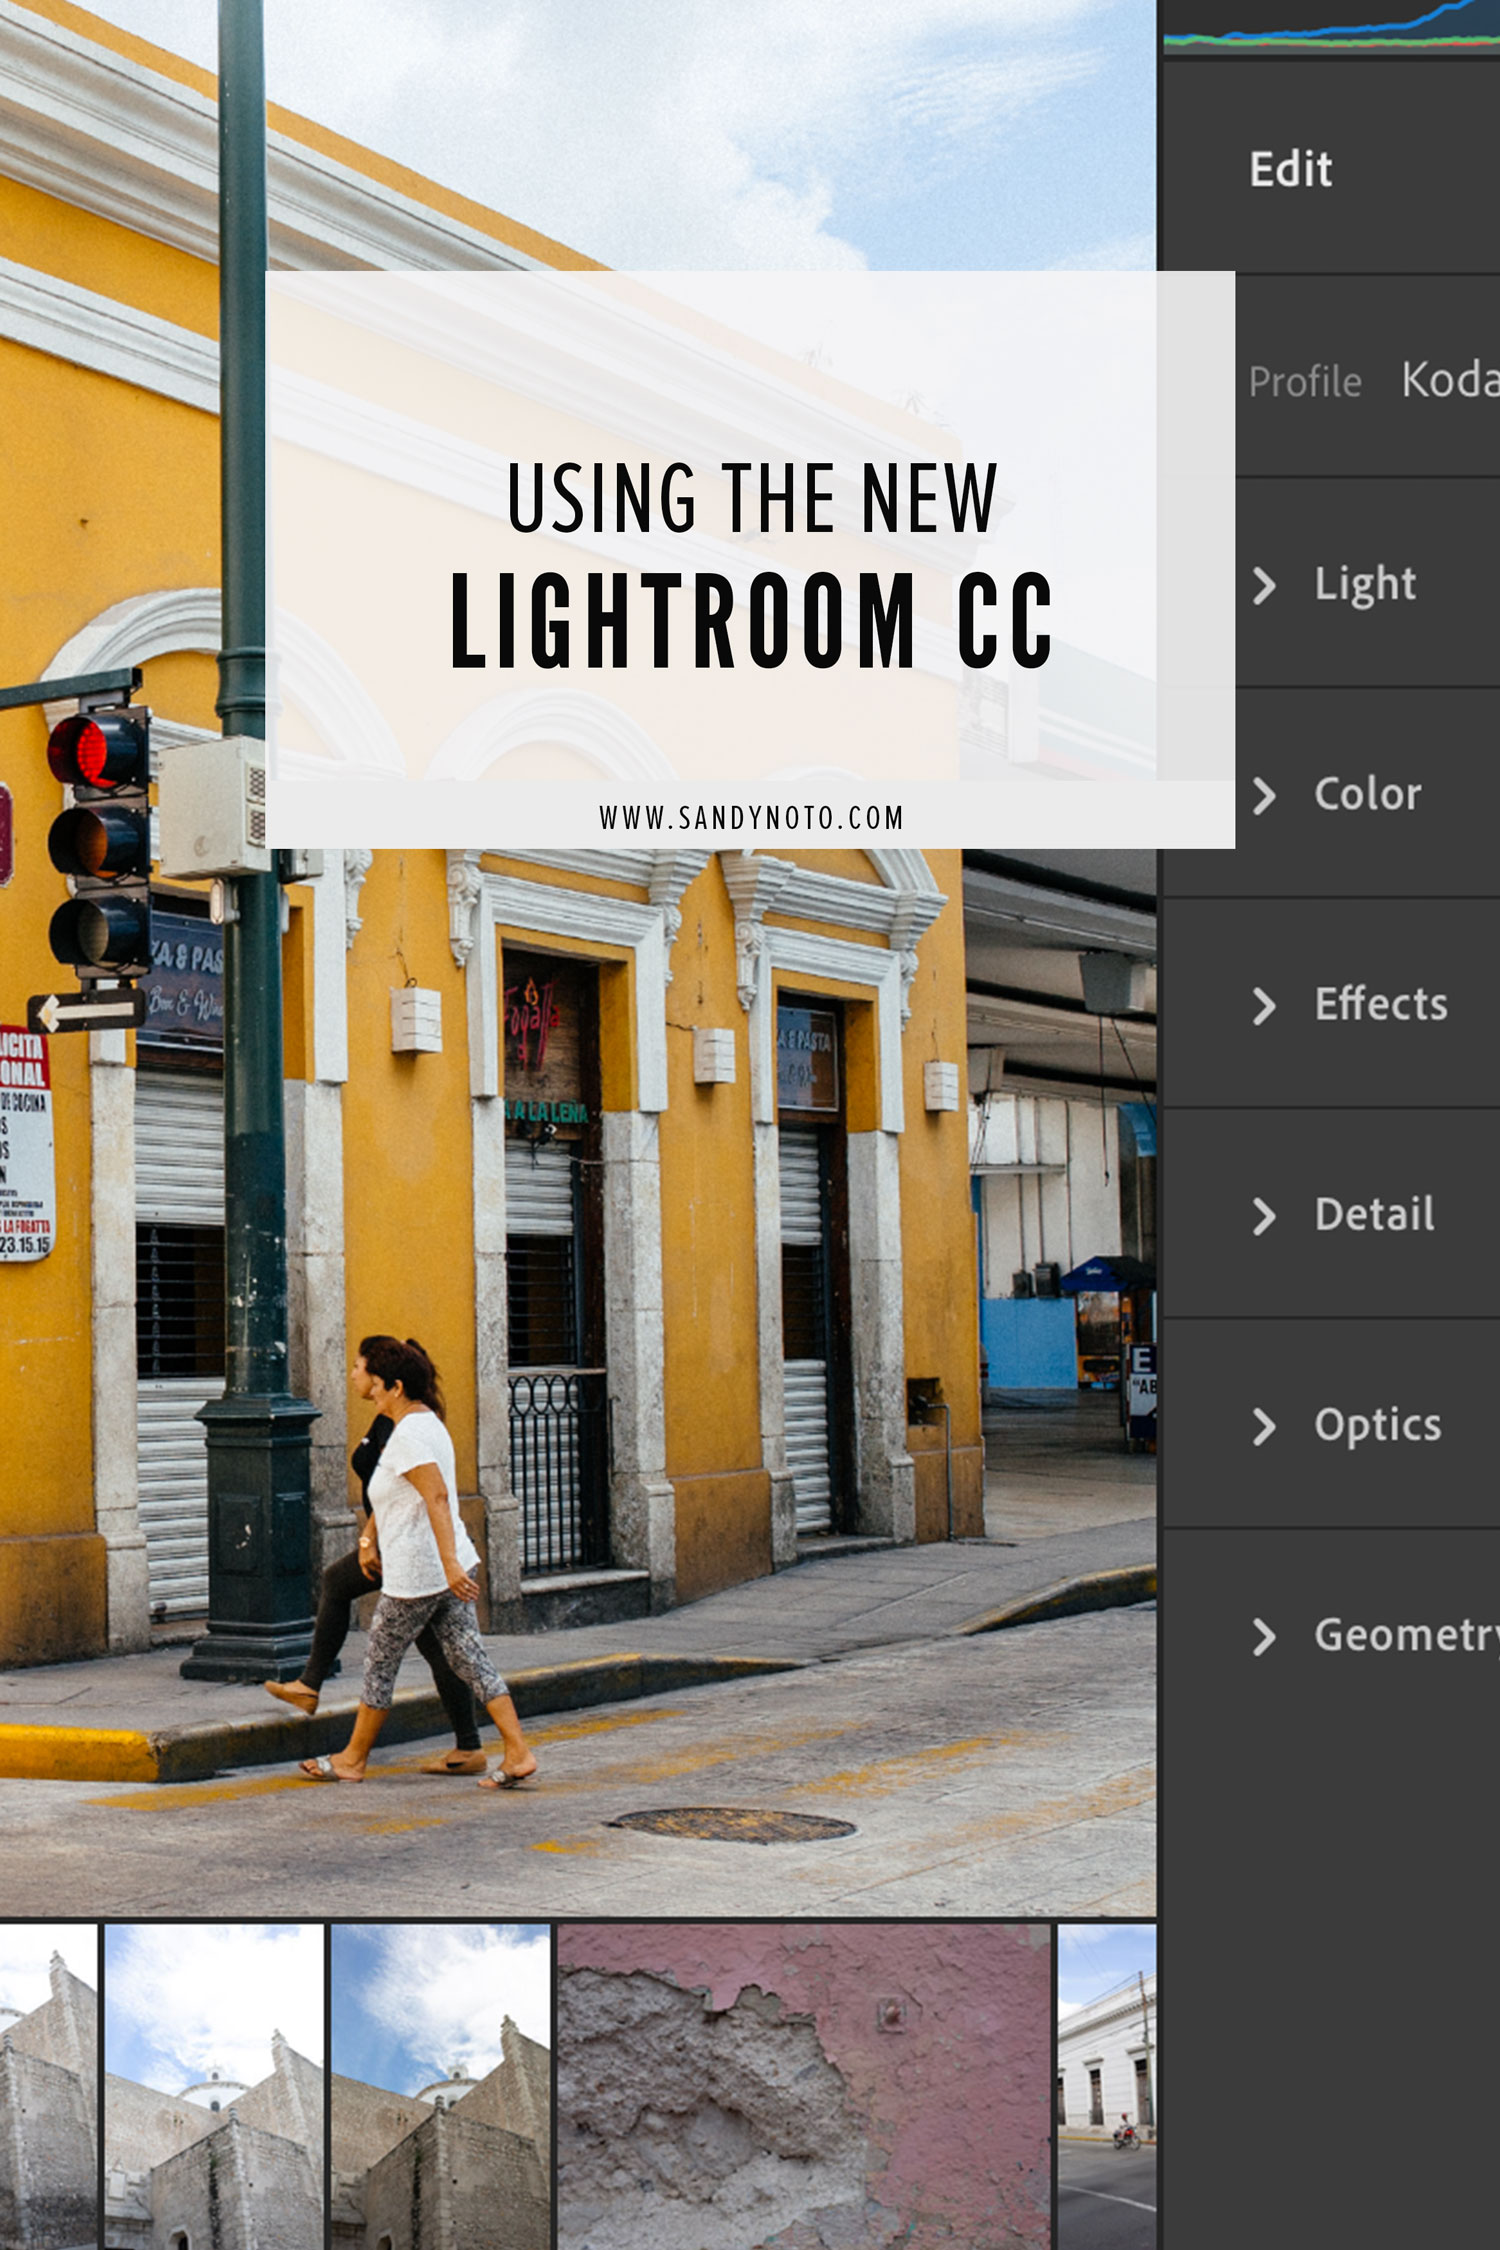 Using the new lightroom cc